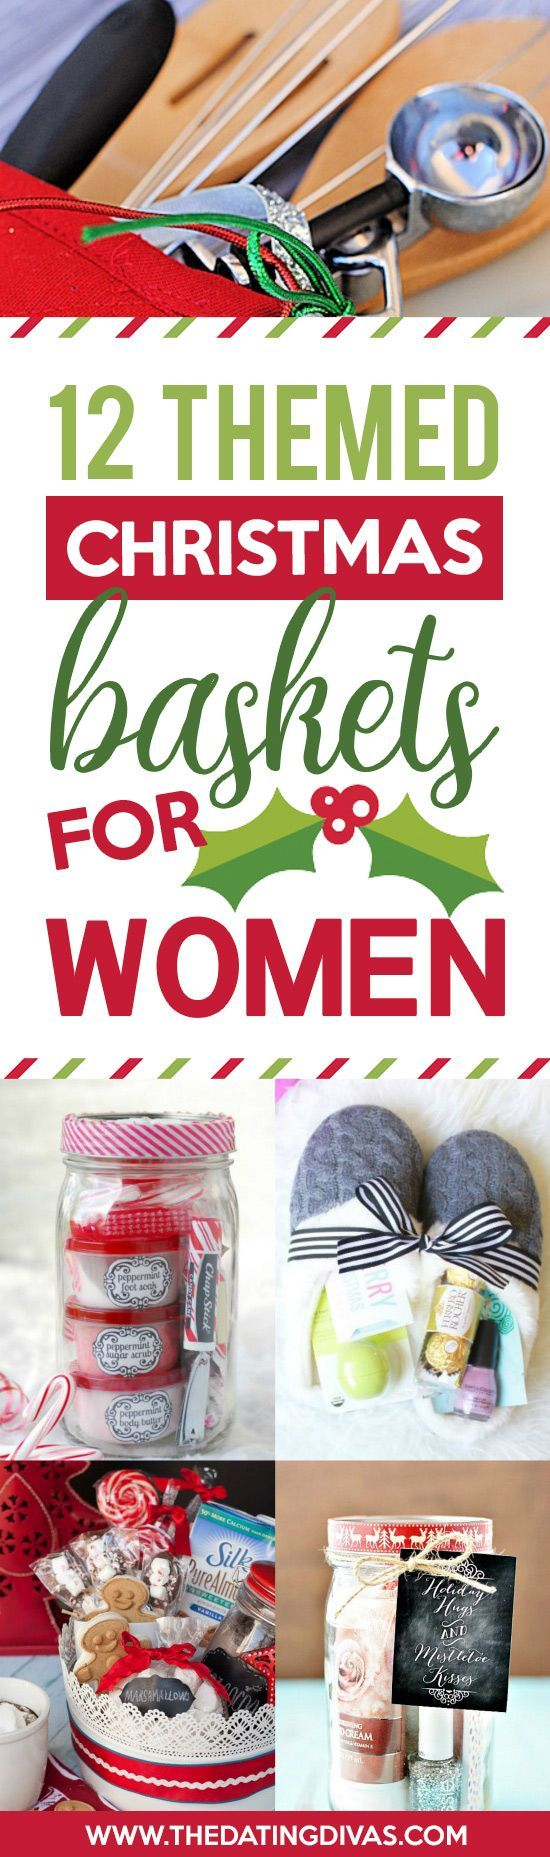 Themed Christmas Gift Ideas Part - 19: Christmas Gift Baskets For Women- Great DIY Christmas Gift Ideas For HER!  #christmasgiftforher